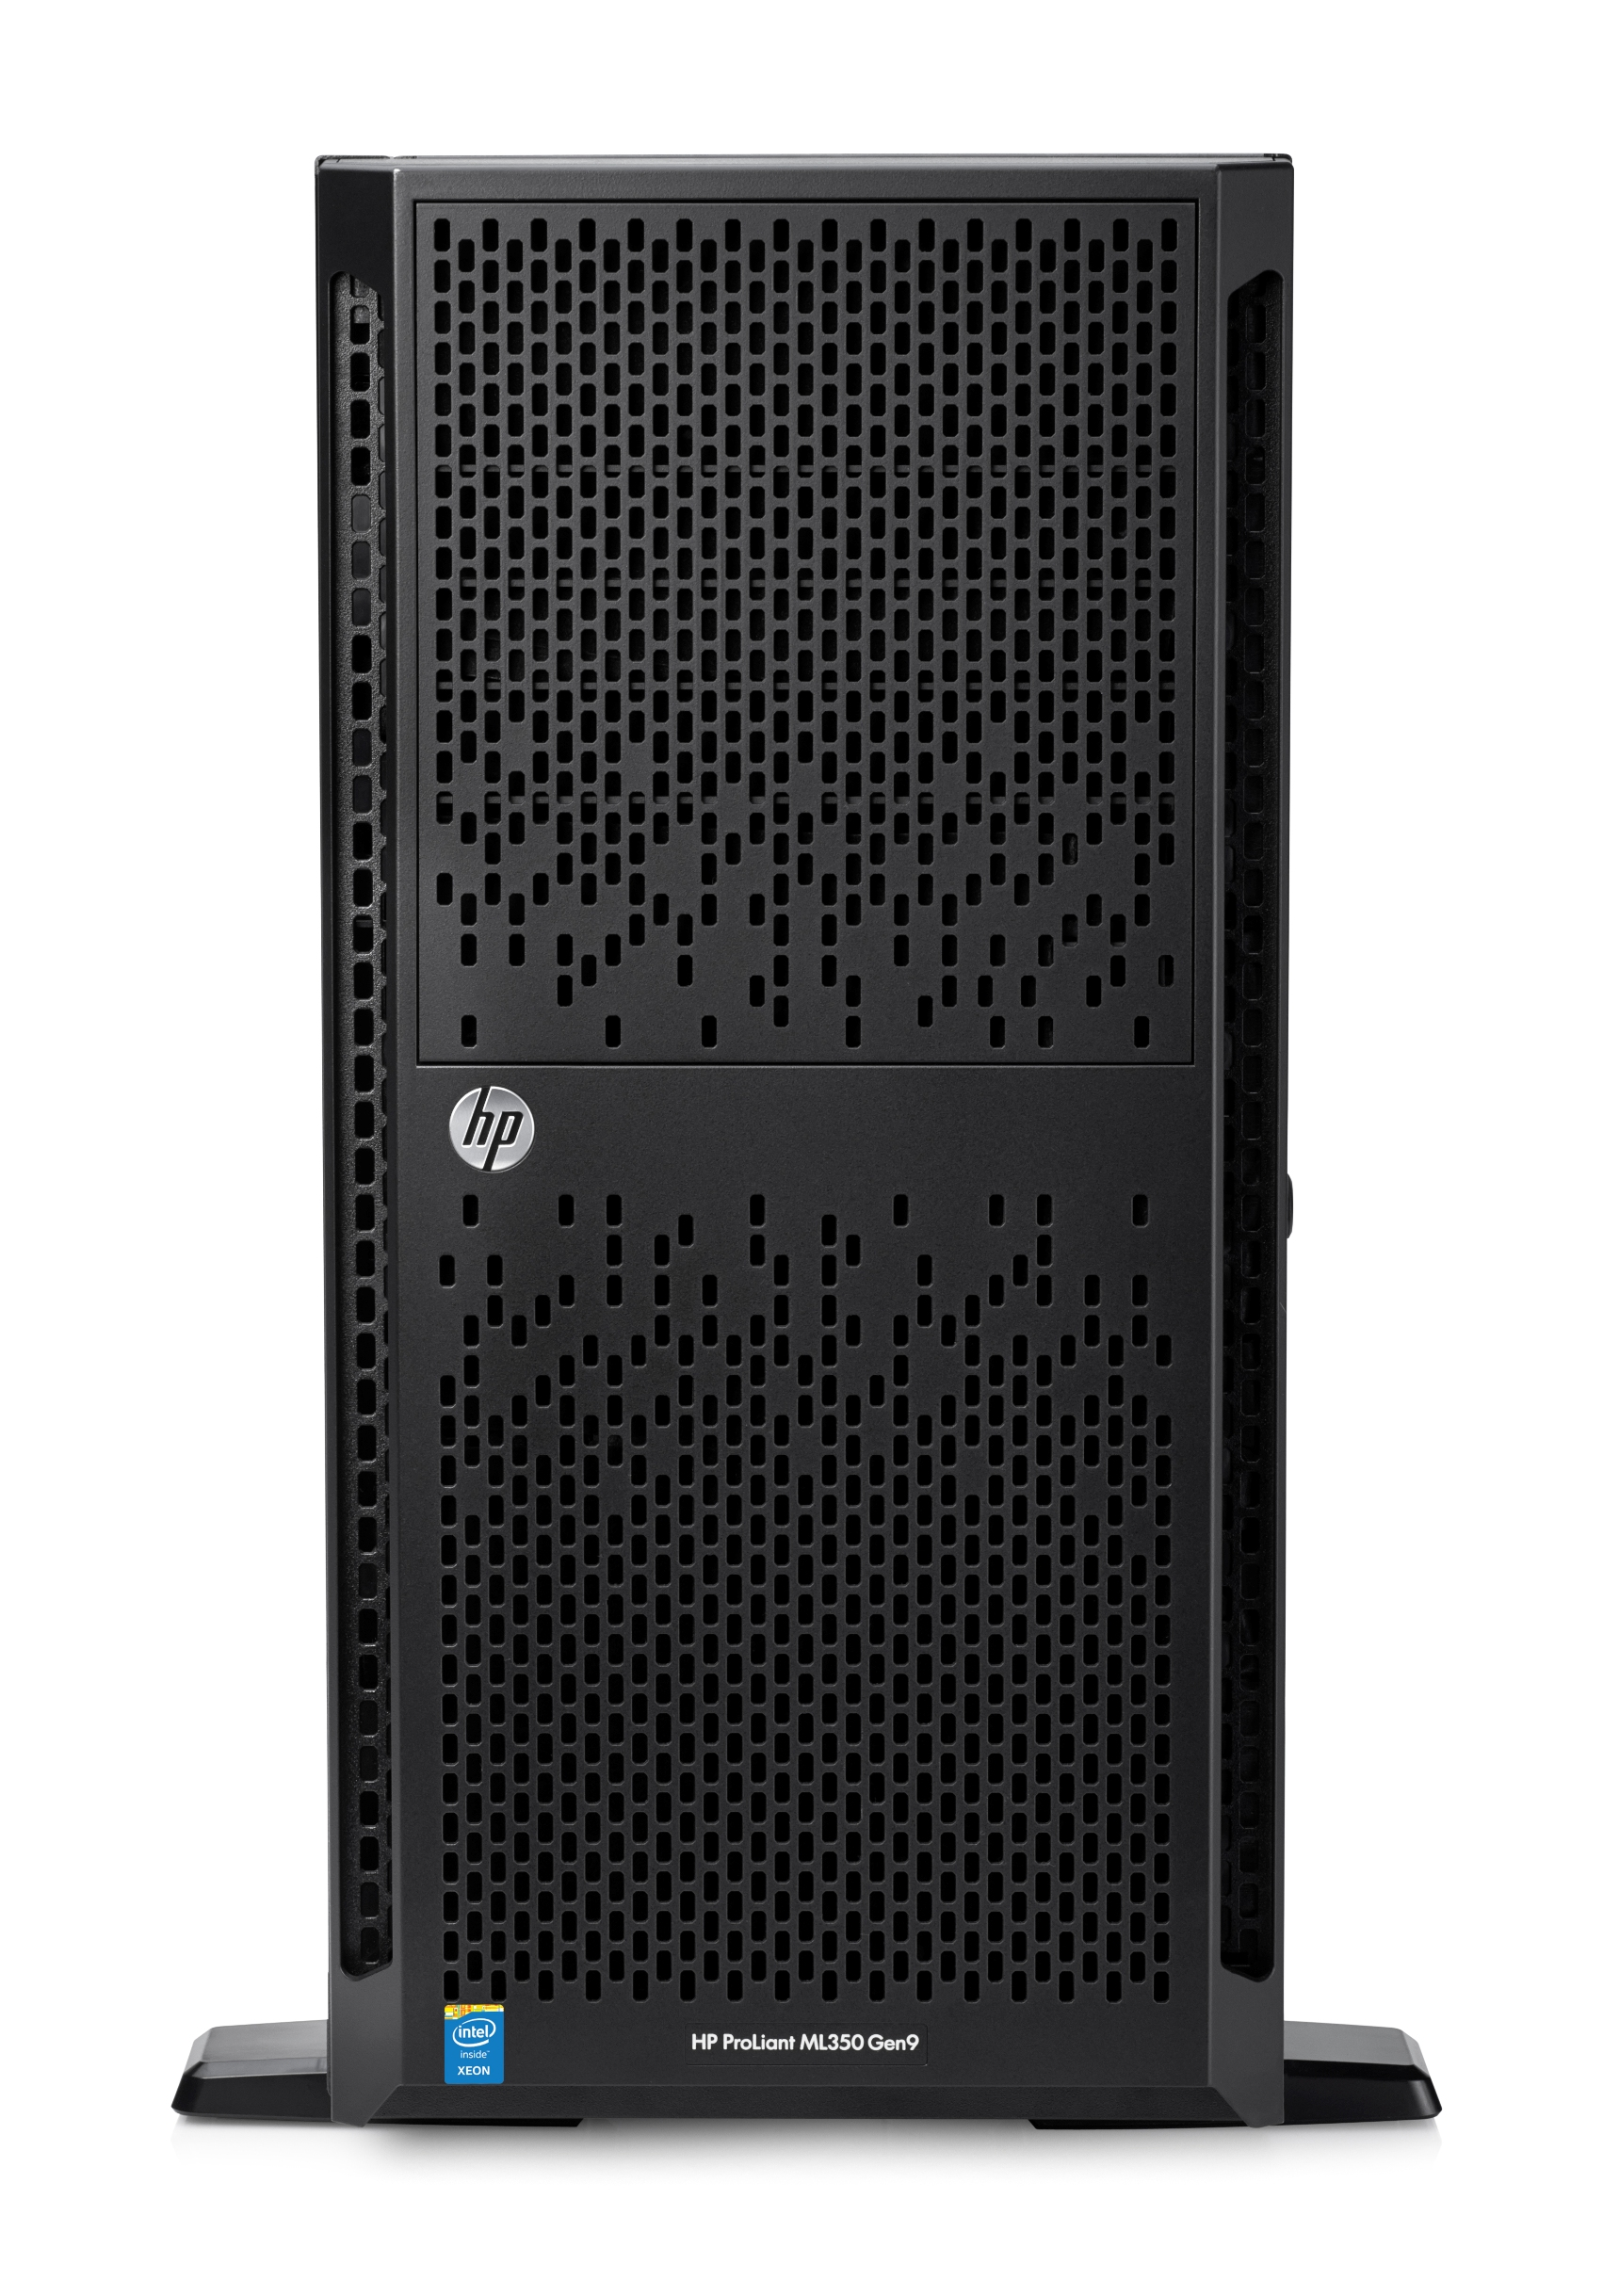 HP ML350 Gen9 E5-2650v3, 32GB, 8 SFF, P440